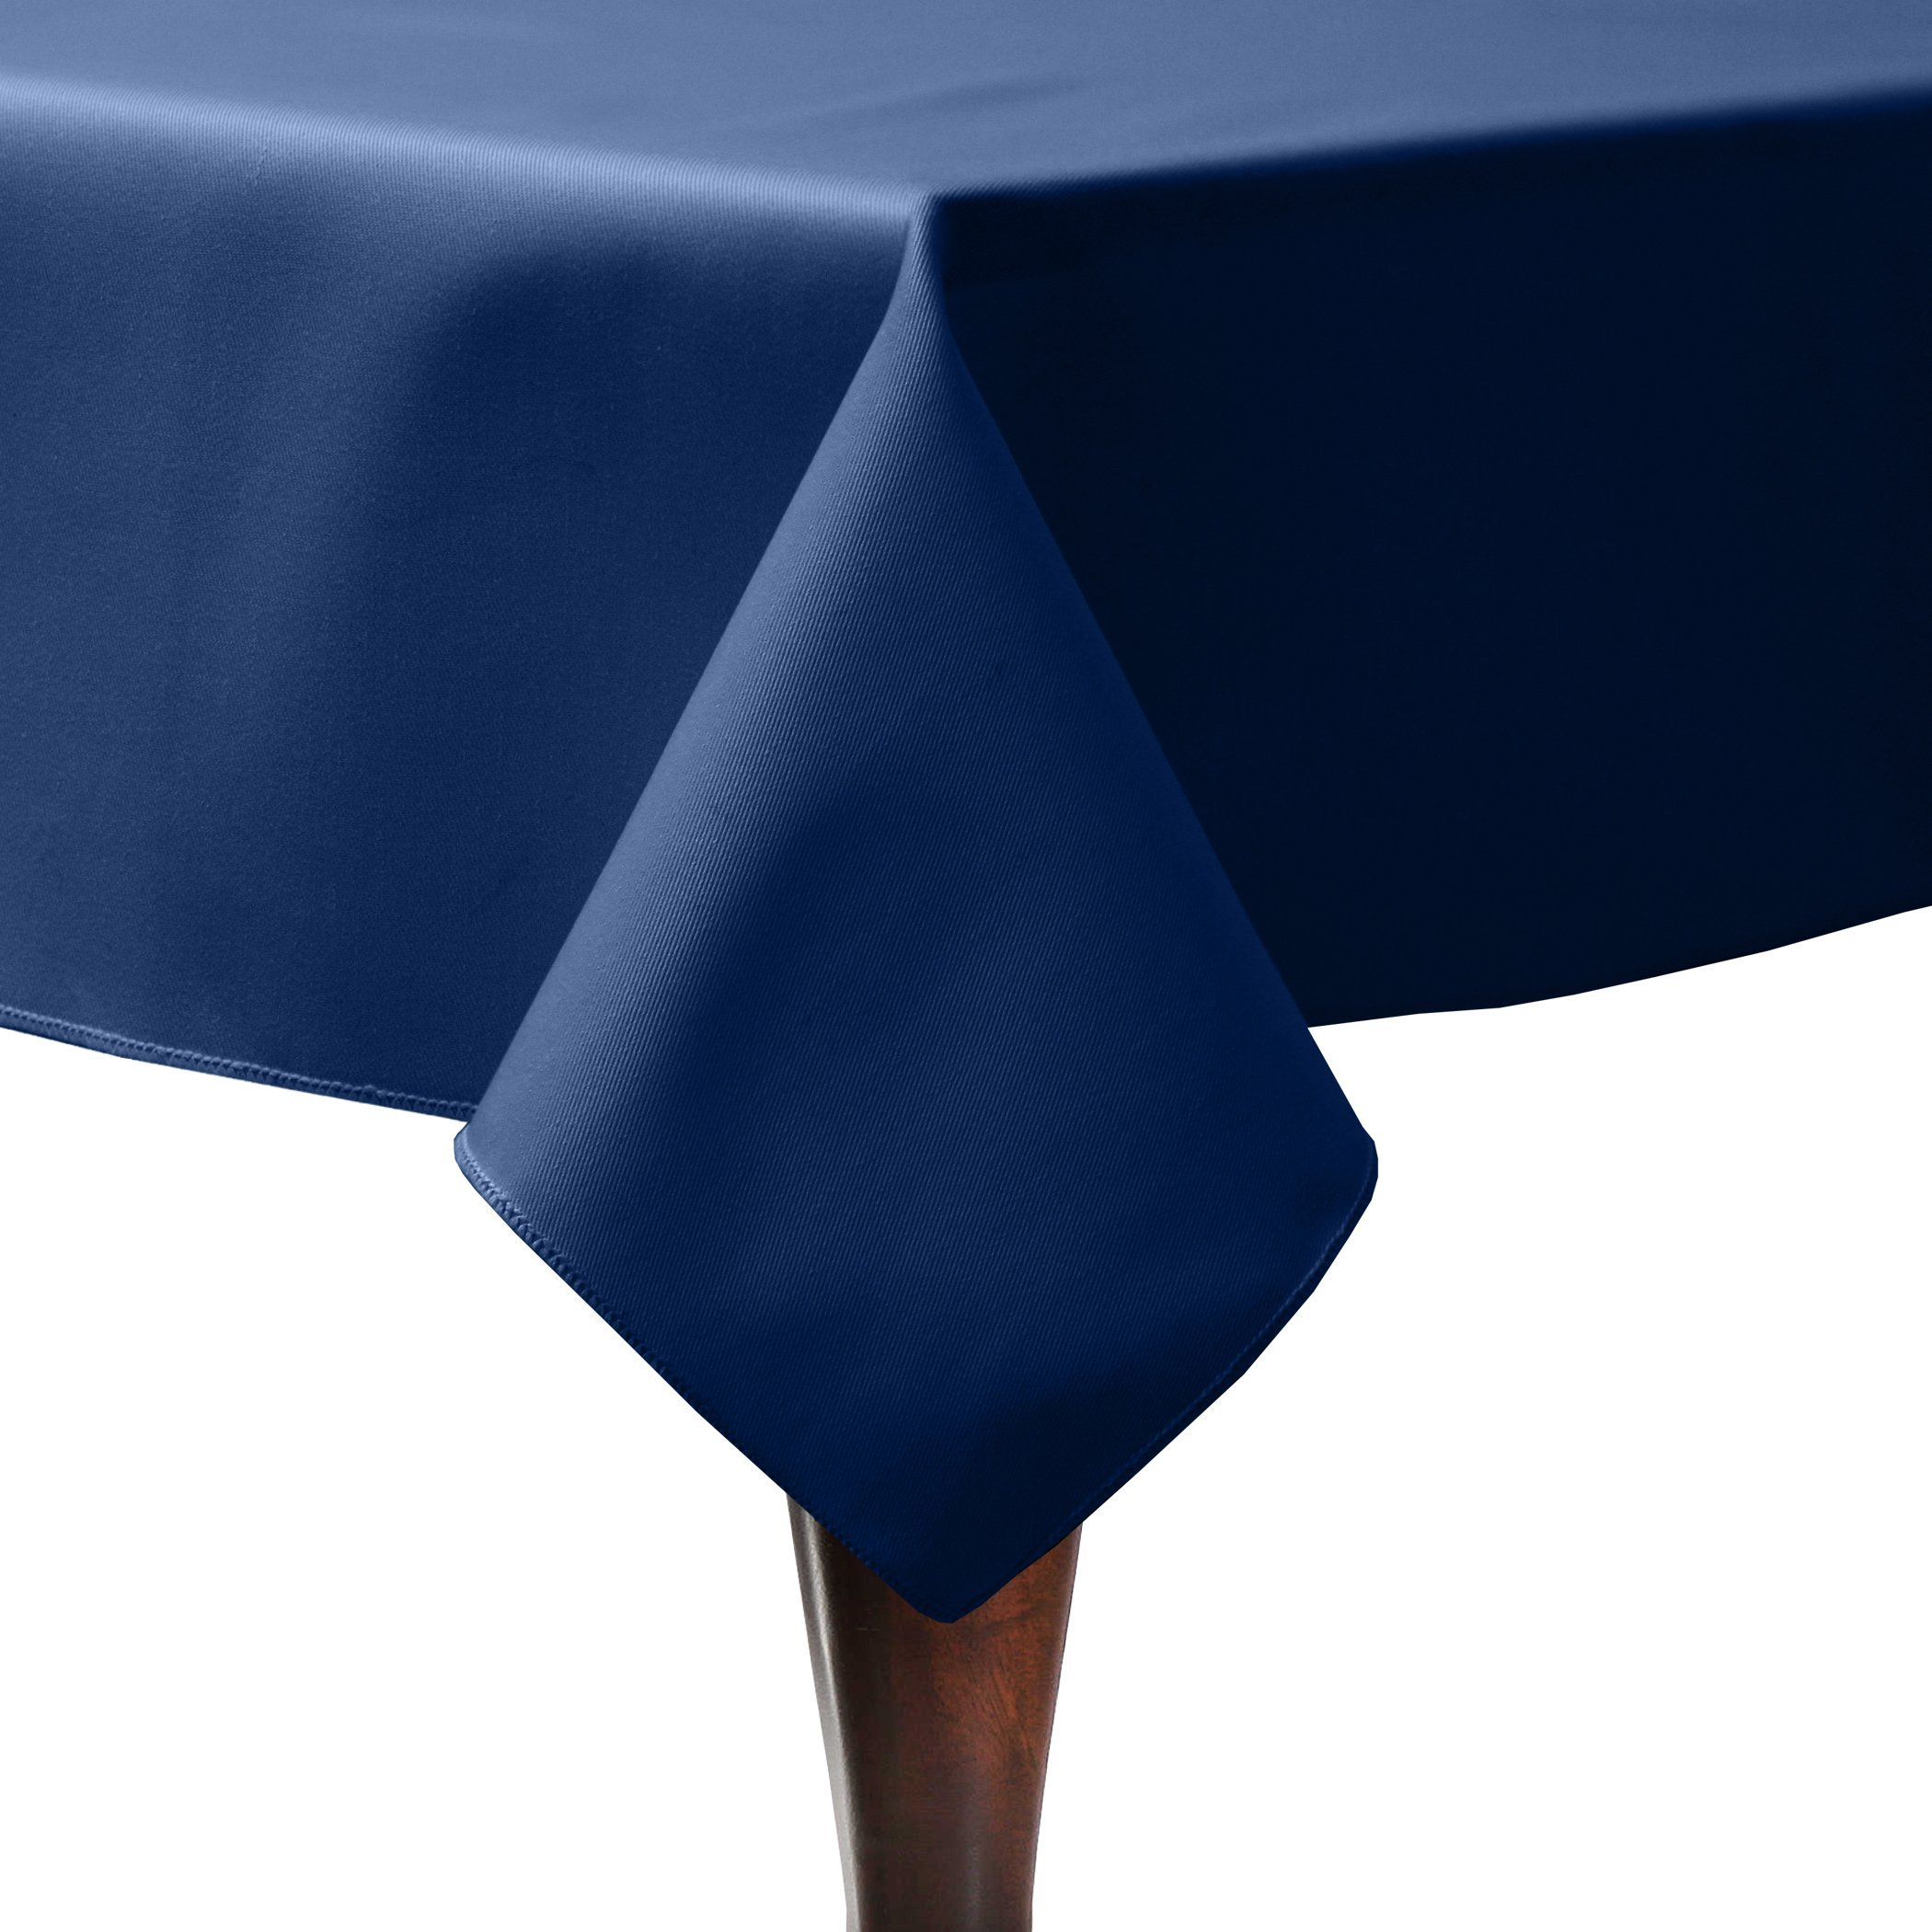 Ultimate Textile (5 Pack) Poly-cotton Twill 60 x 90-Inch Rectangular Tablecloth - for Restaurant and Catering, Hotel or Home Dining use, Navy Blue